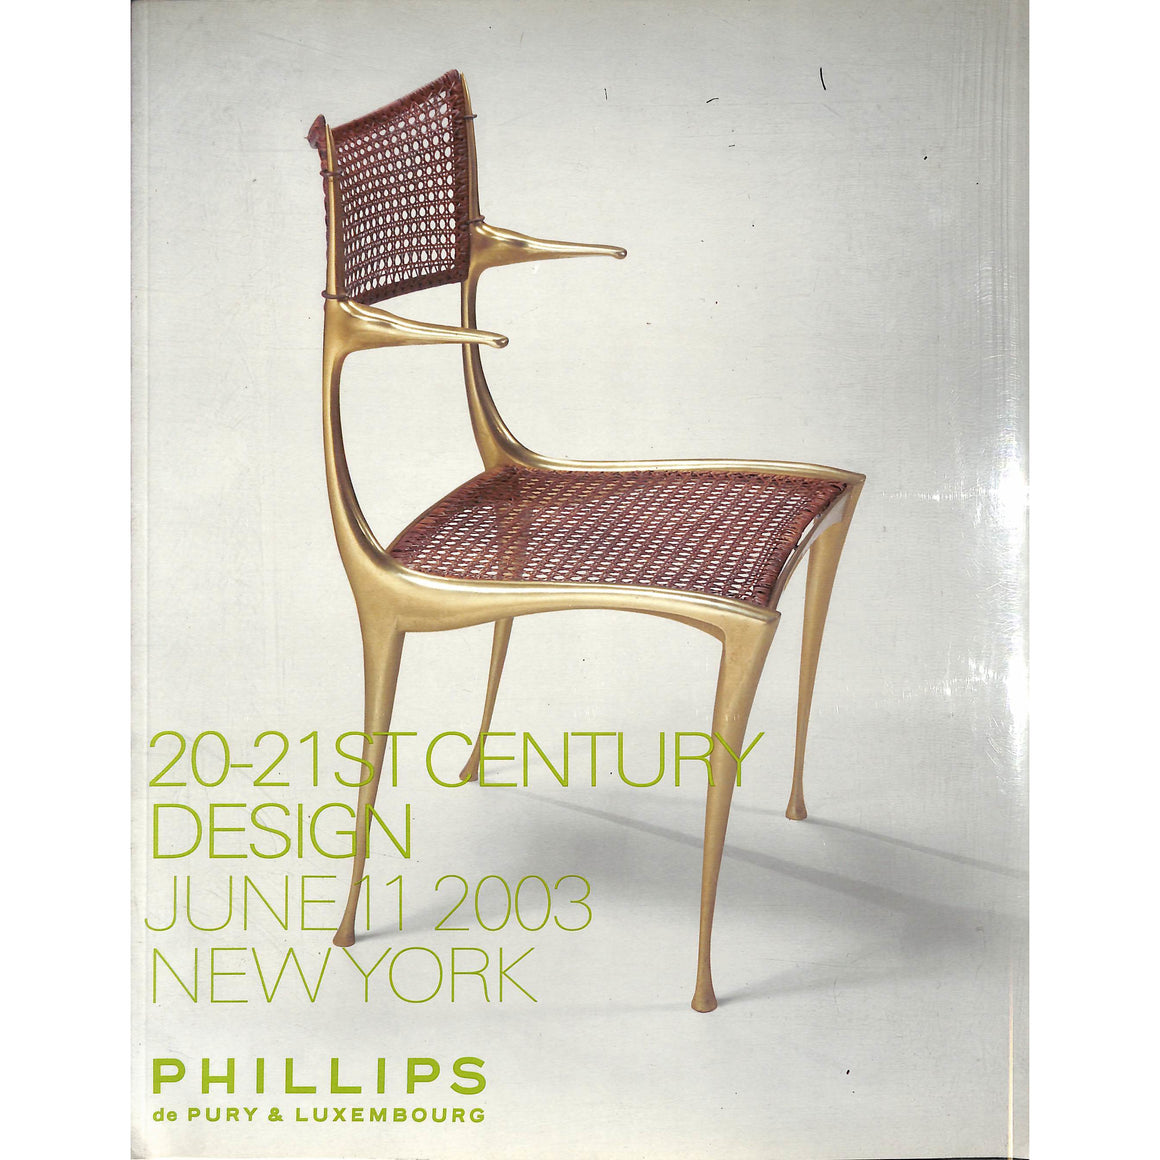 20-21st Century Design: June 11, 2003